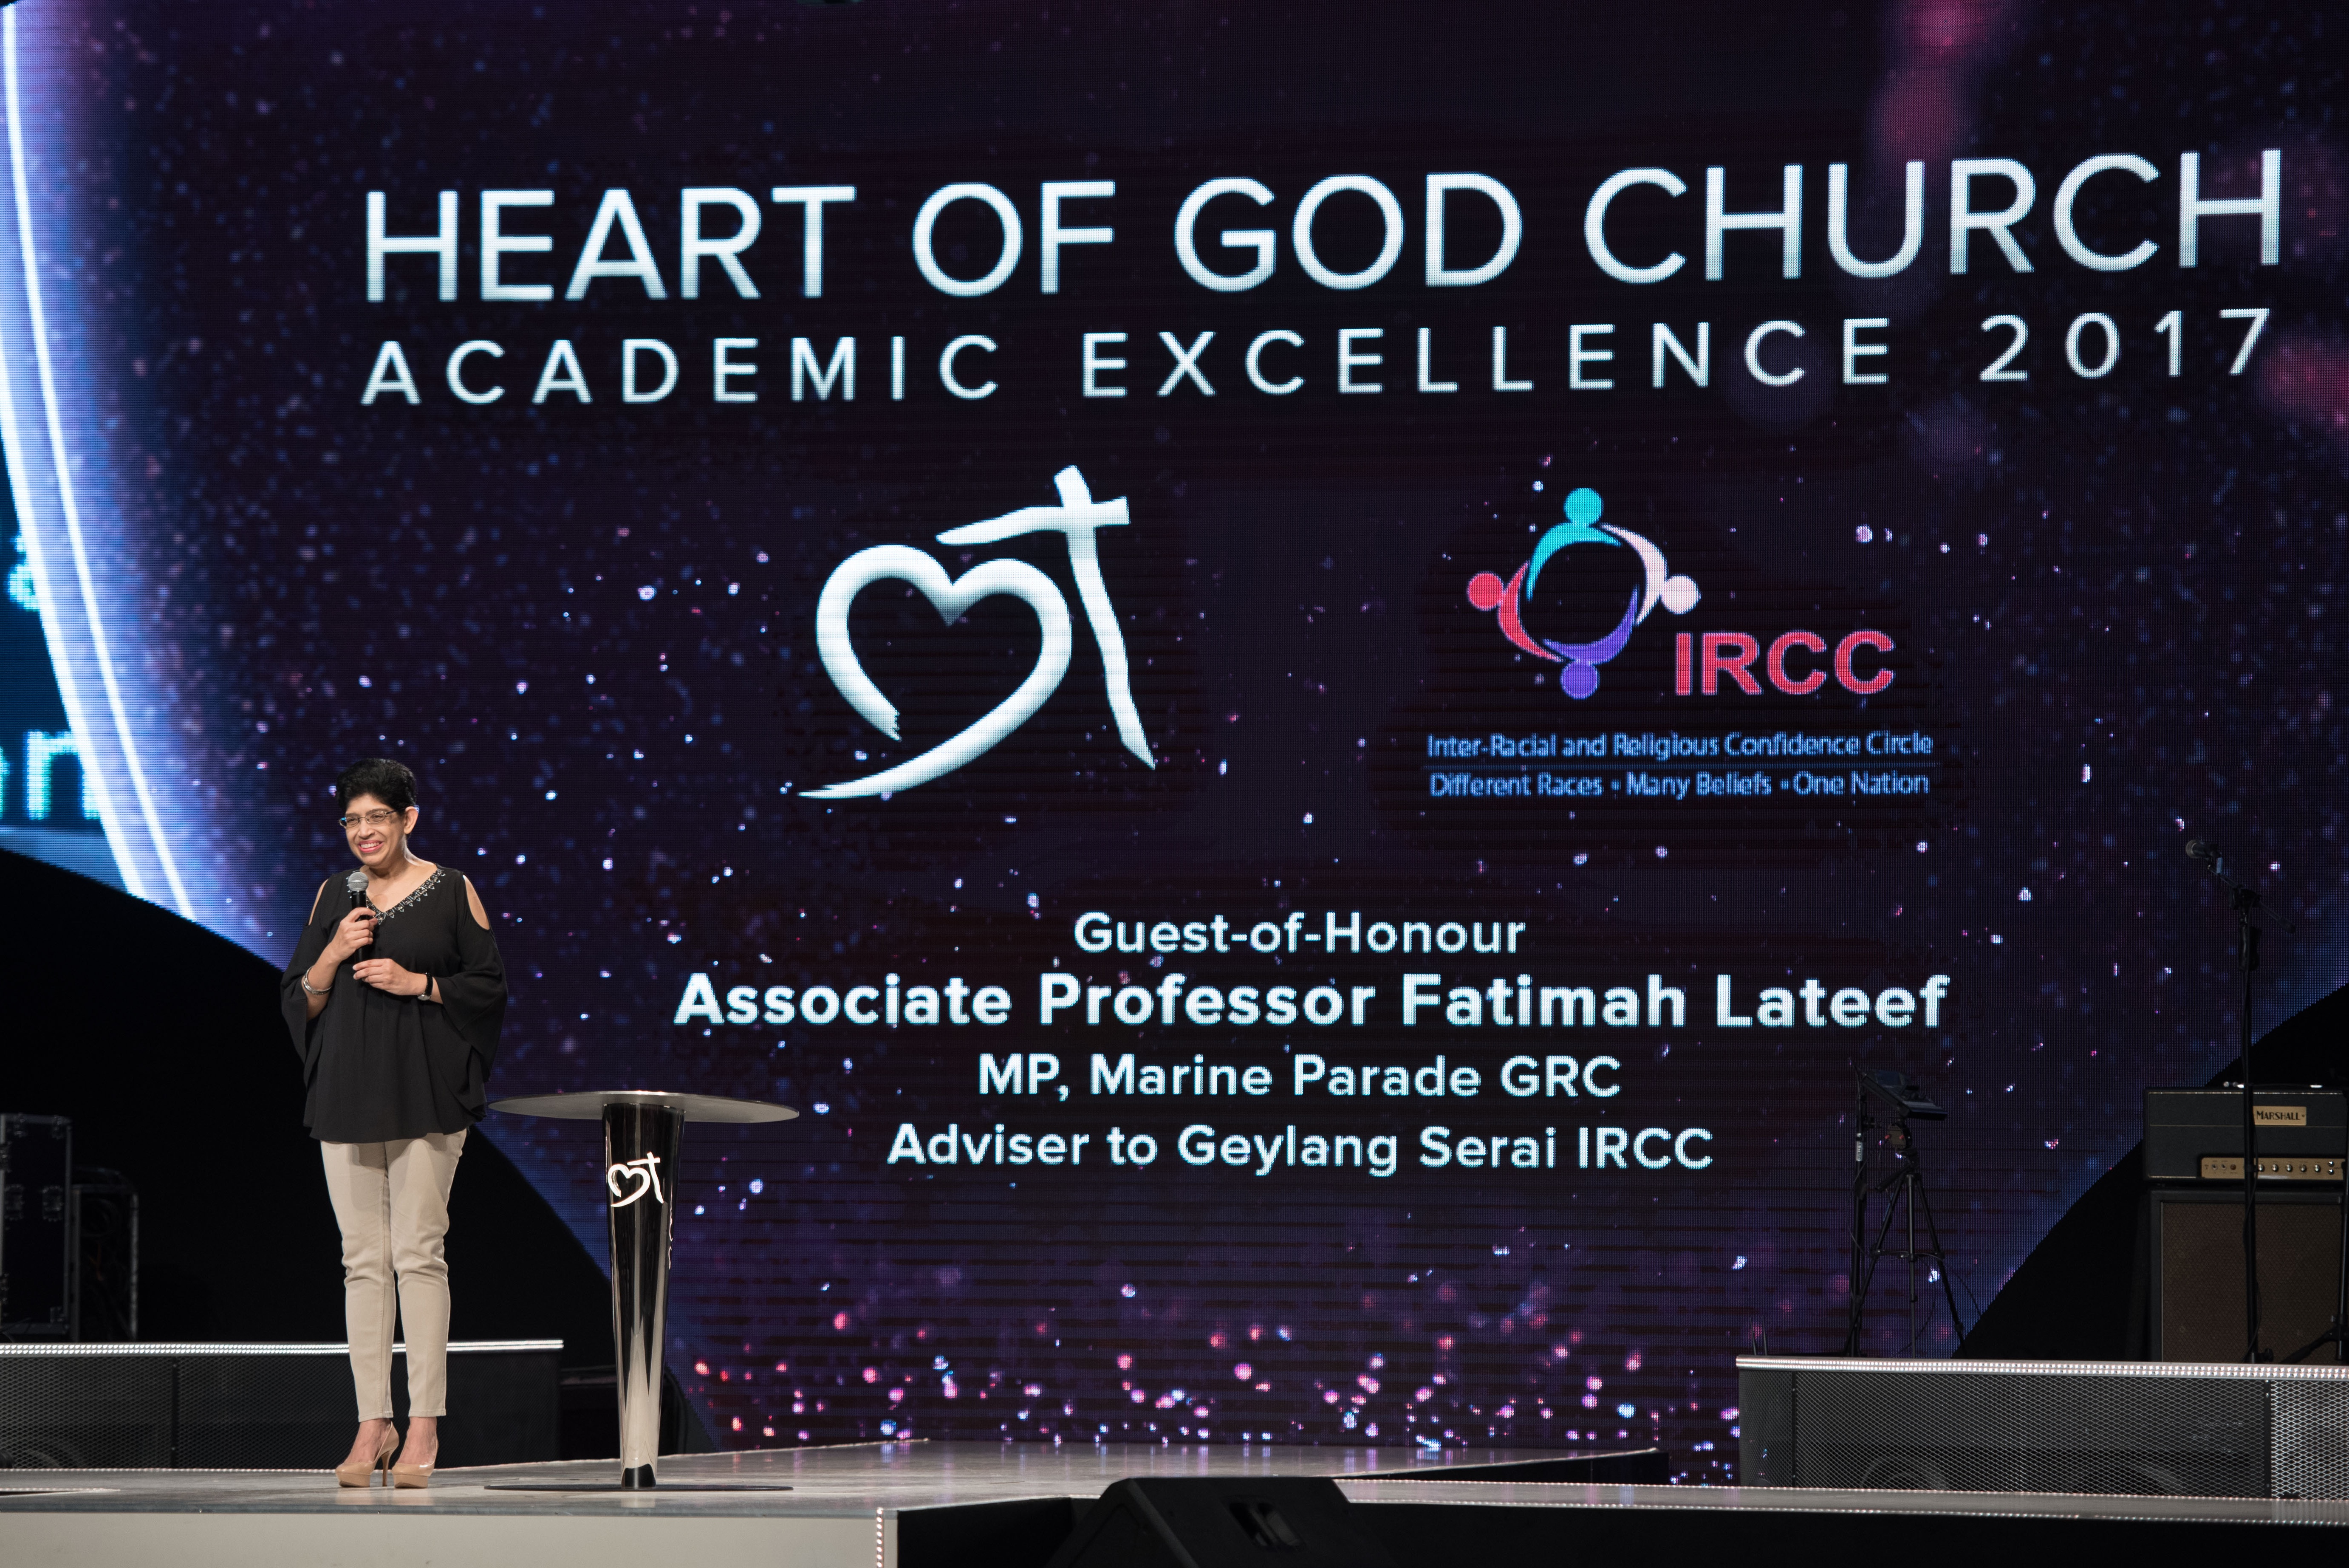 5 Key Facts: Academic Excellence Open House With Assoc. Prof. Fatimah Lateef